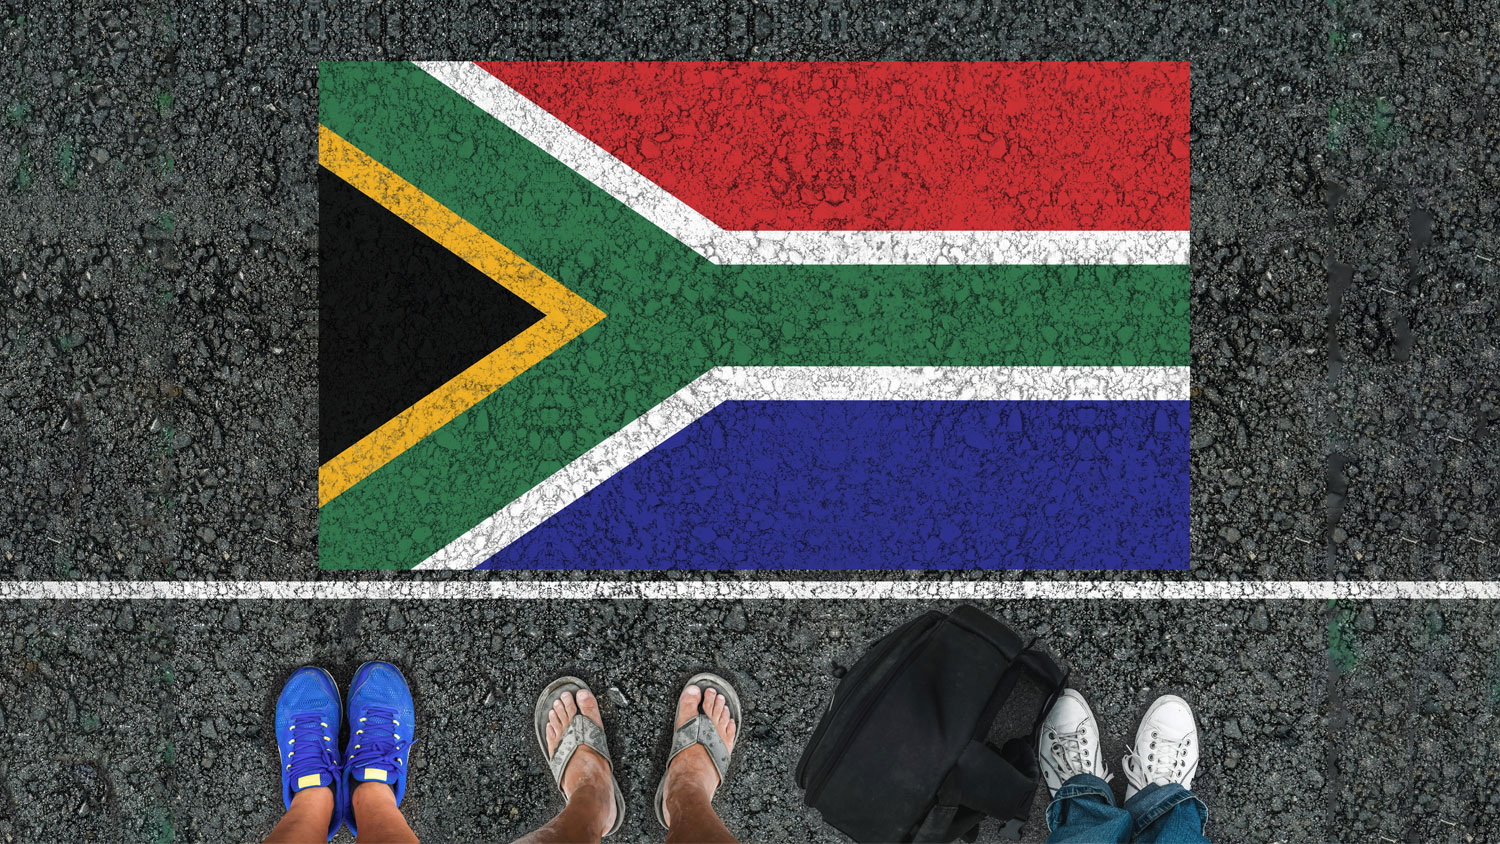 HOW MANY SOUTH AFRICANS ARE STAYING LOCAL